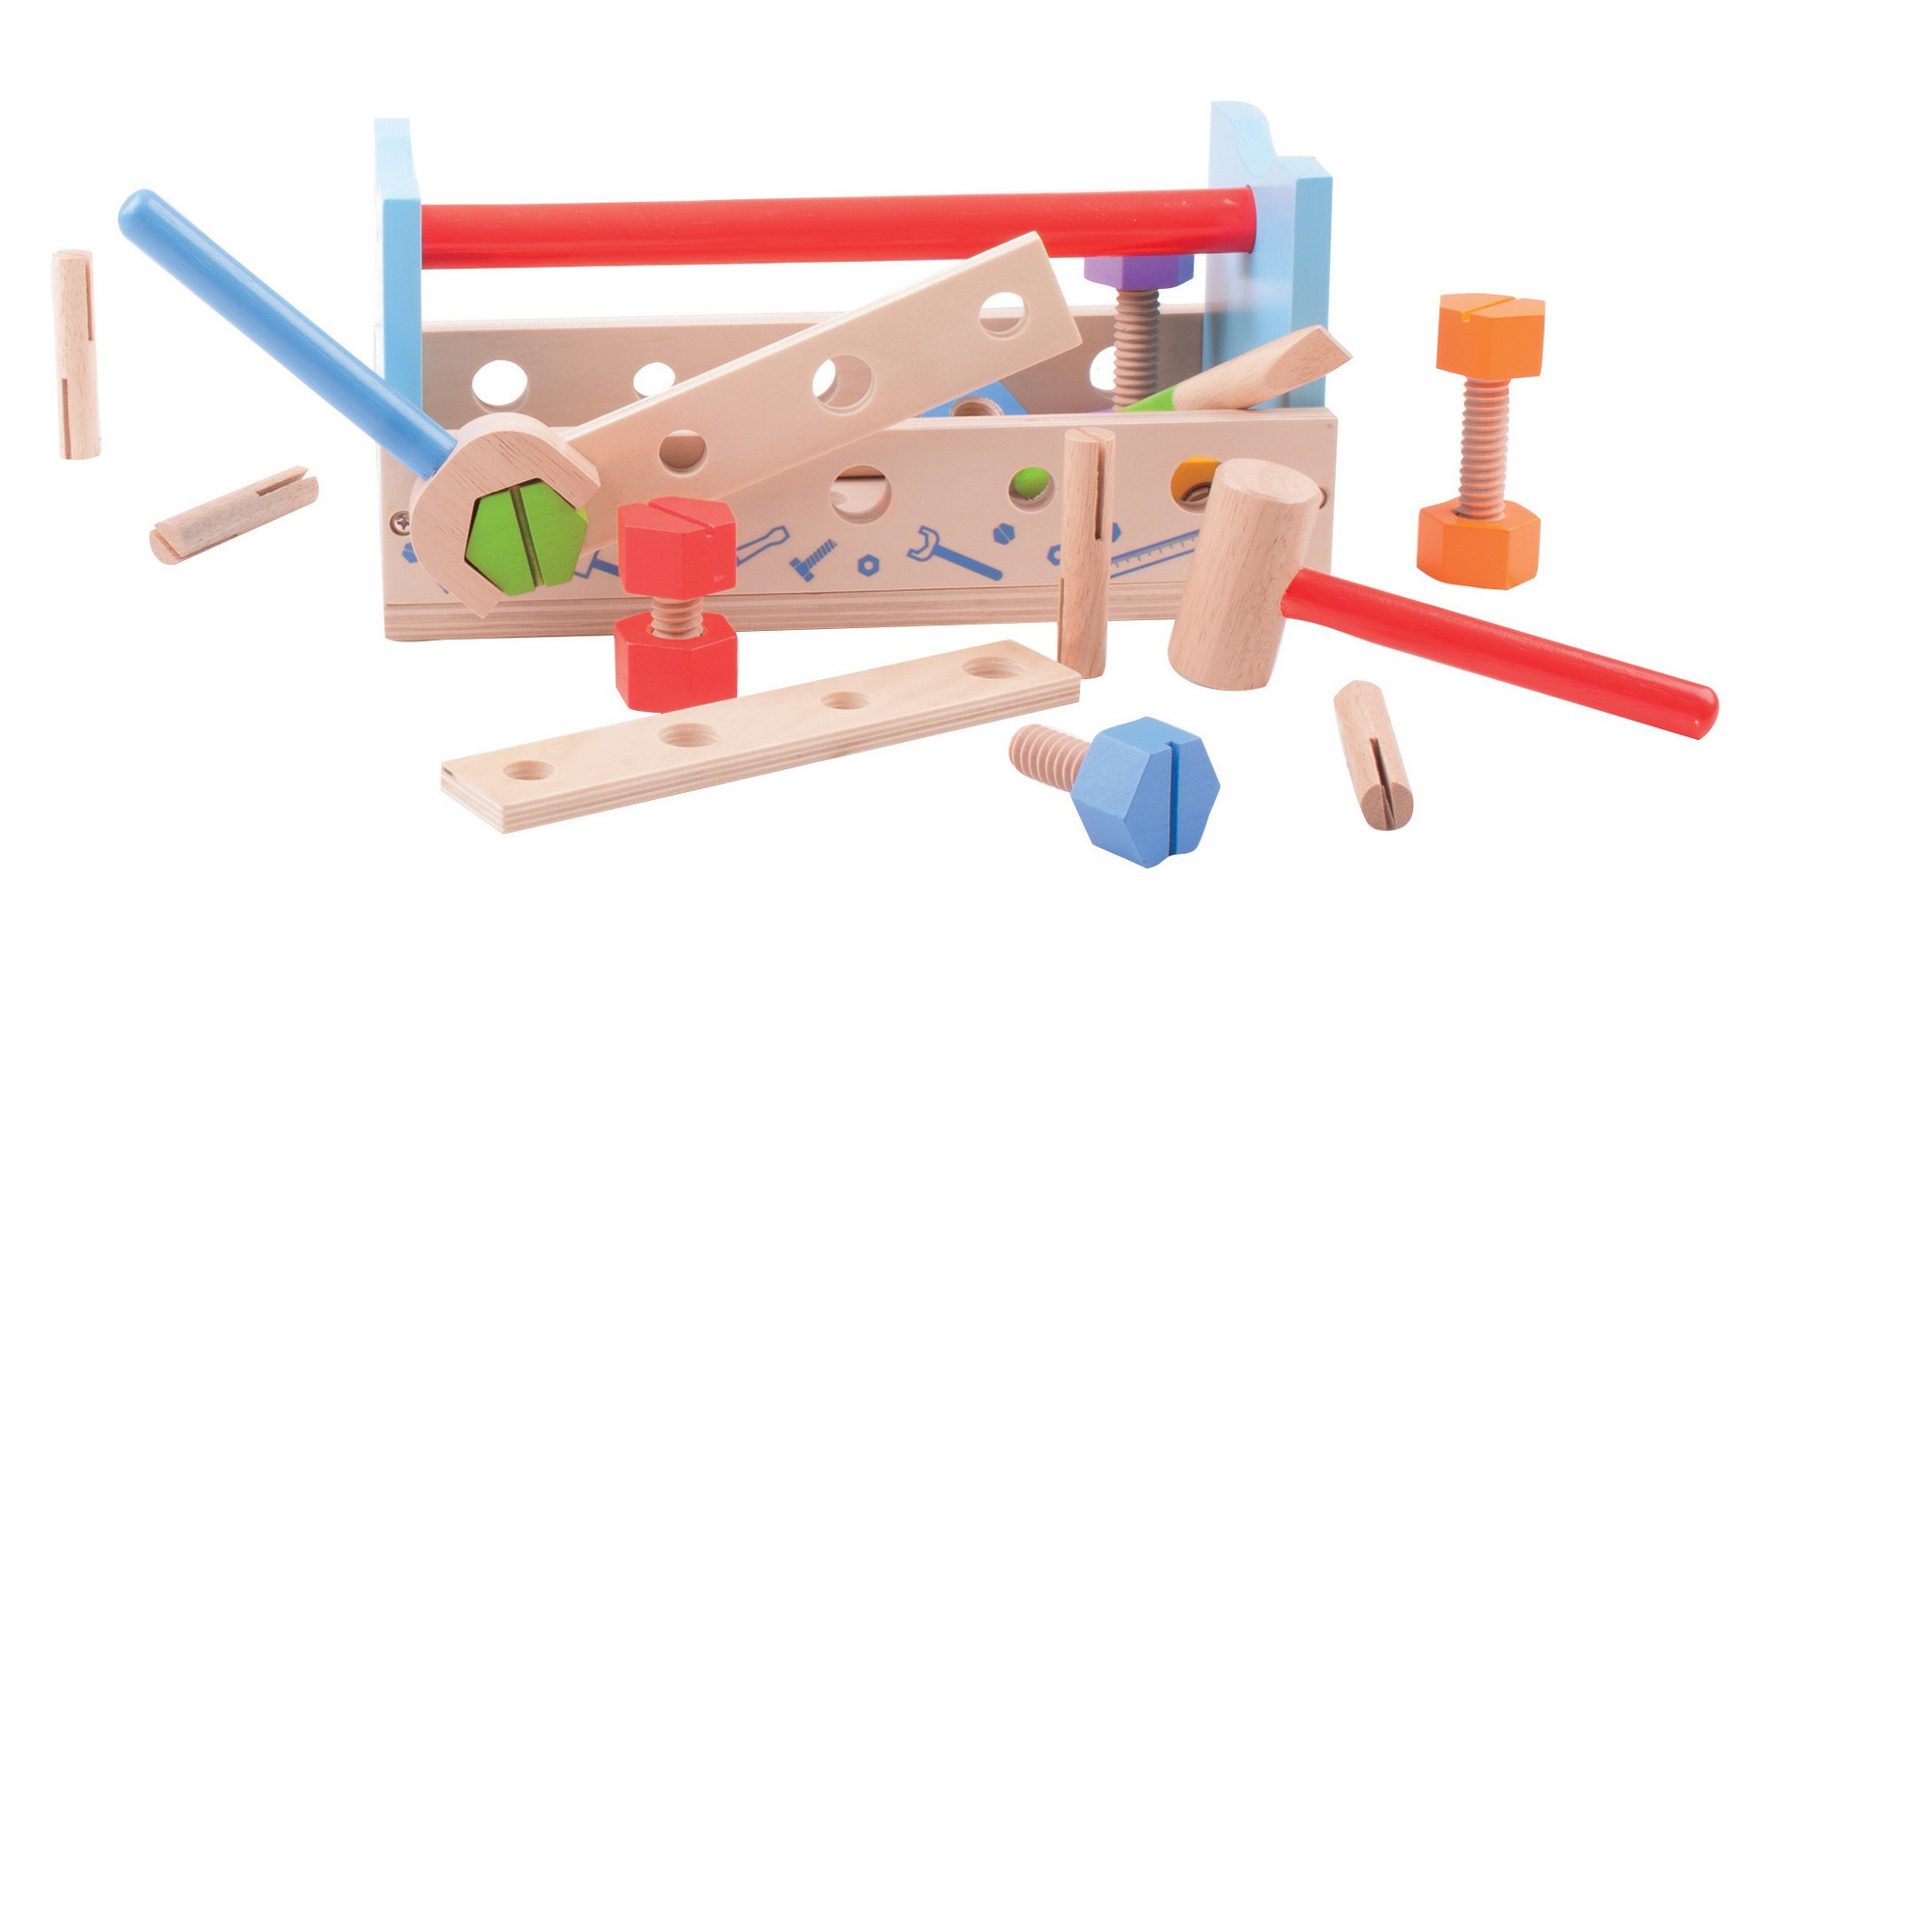 Bigjigs Toys My Workbench Wooden Role Play Toy   Role play and Products